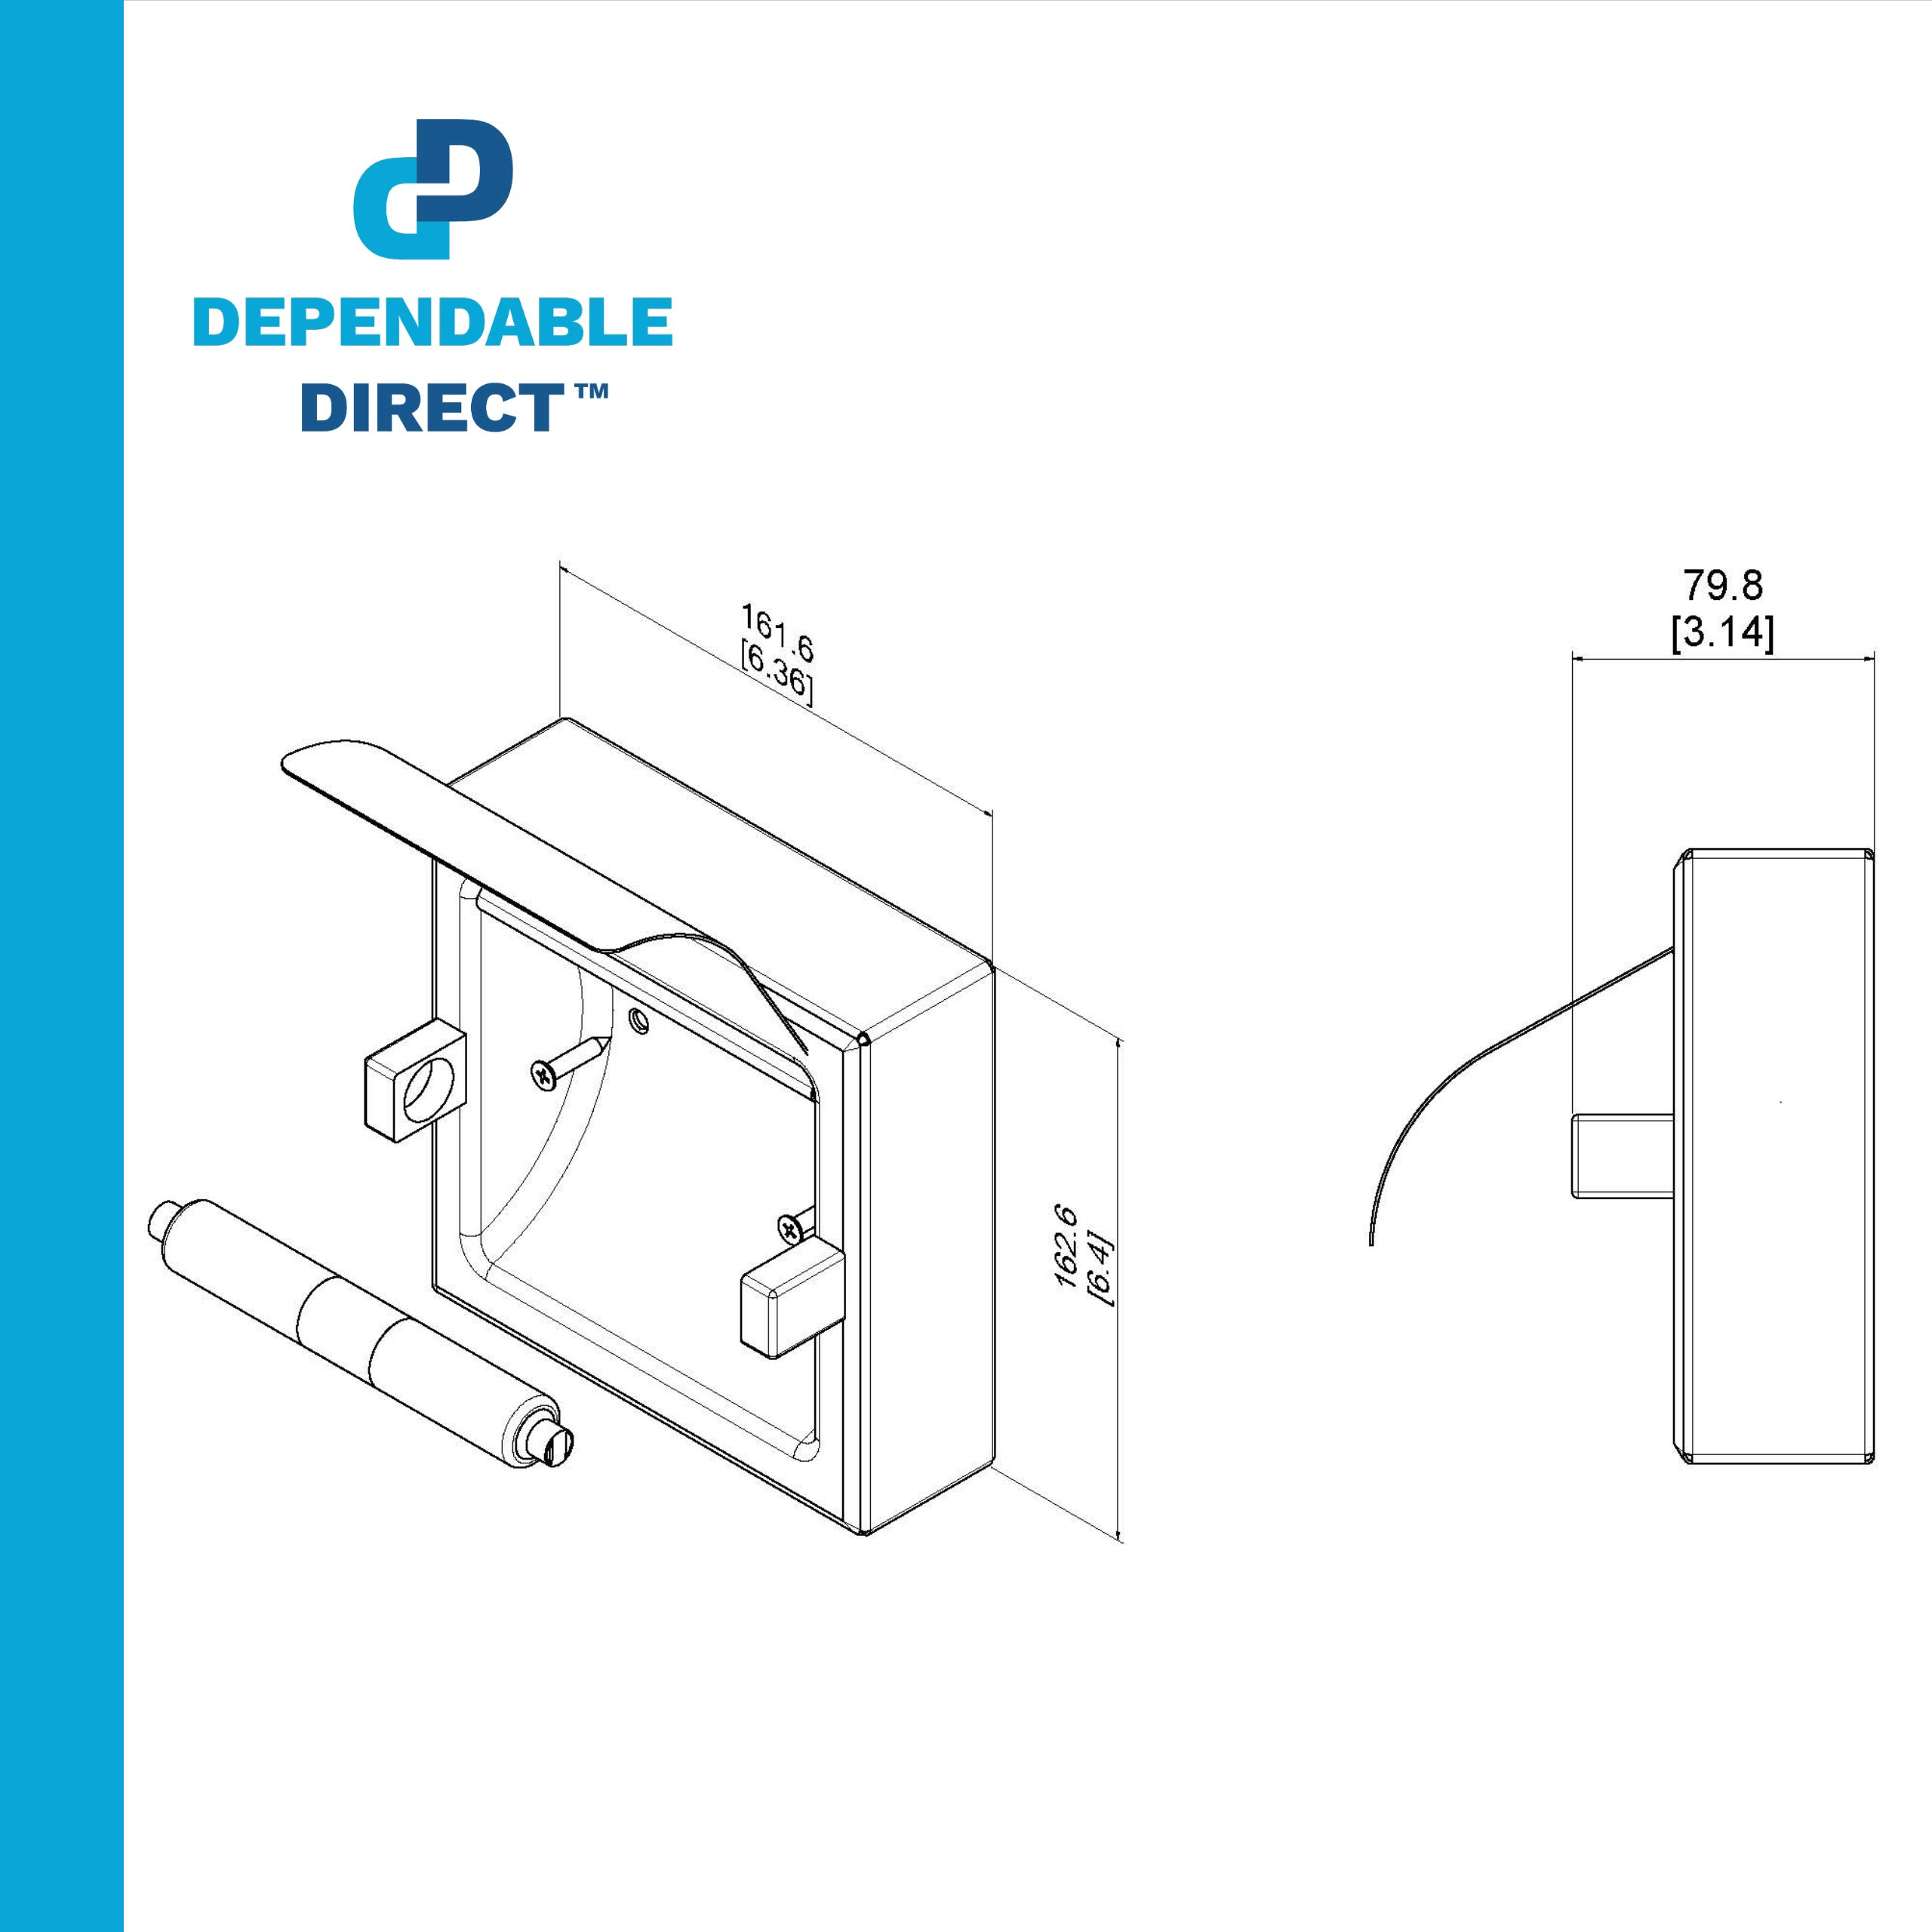 Dependable Direct Pack of 9 - Horizontal Two Roll Hooded Toilet Paper Holder - Stainless Steel - Satin Finish - Surface Mount by Dependable Direct (Image #6)